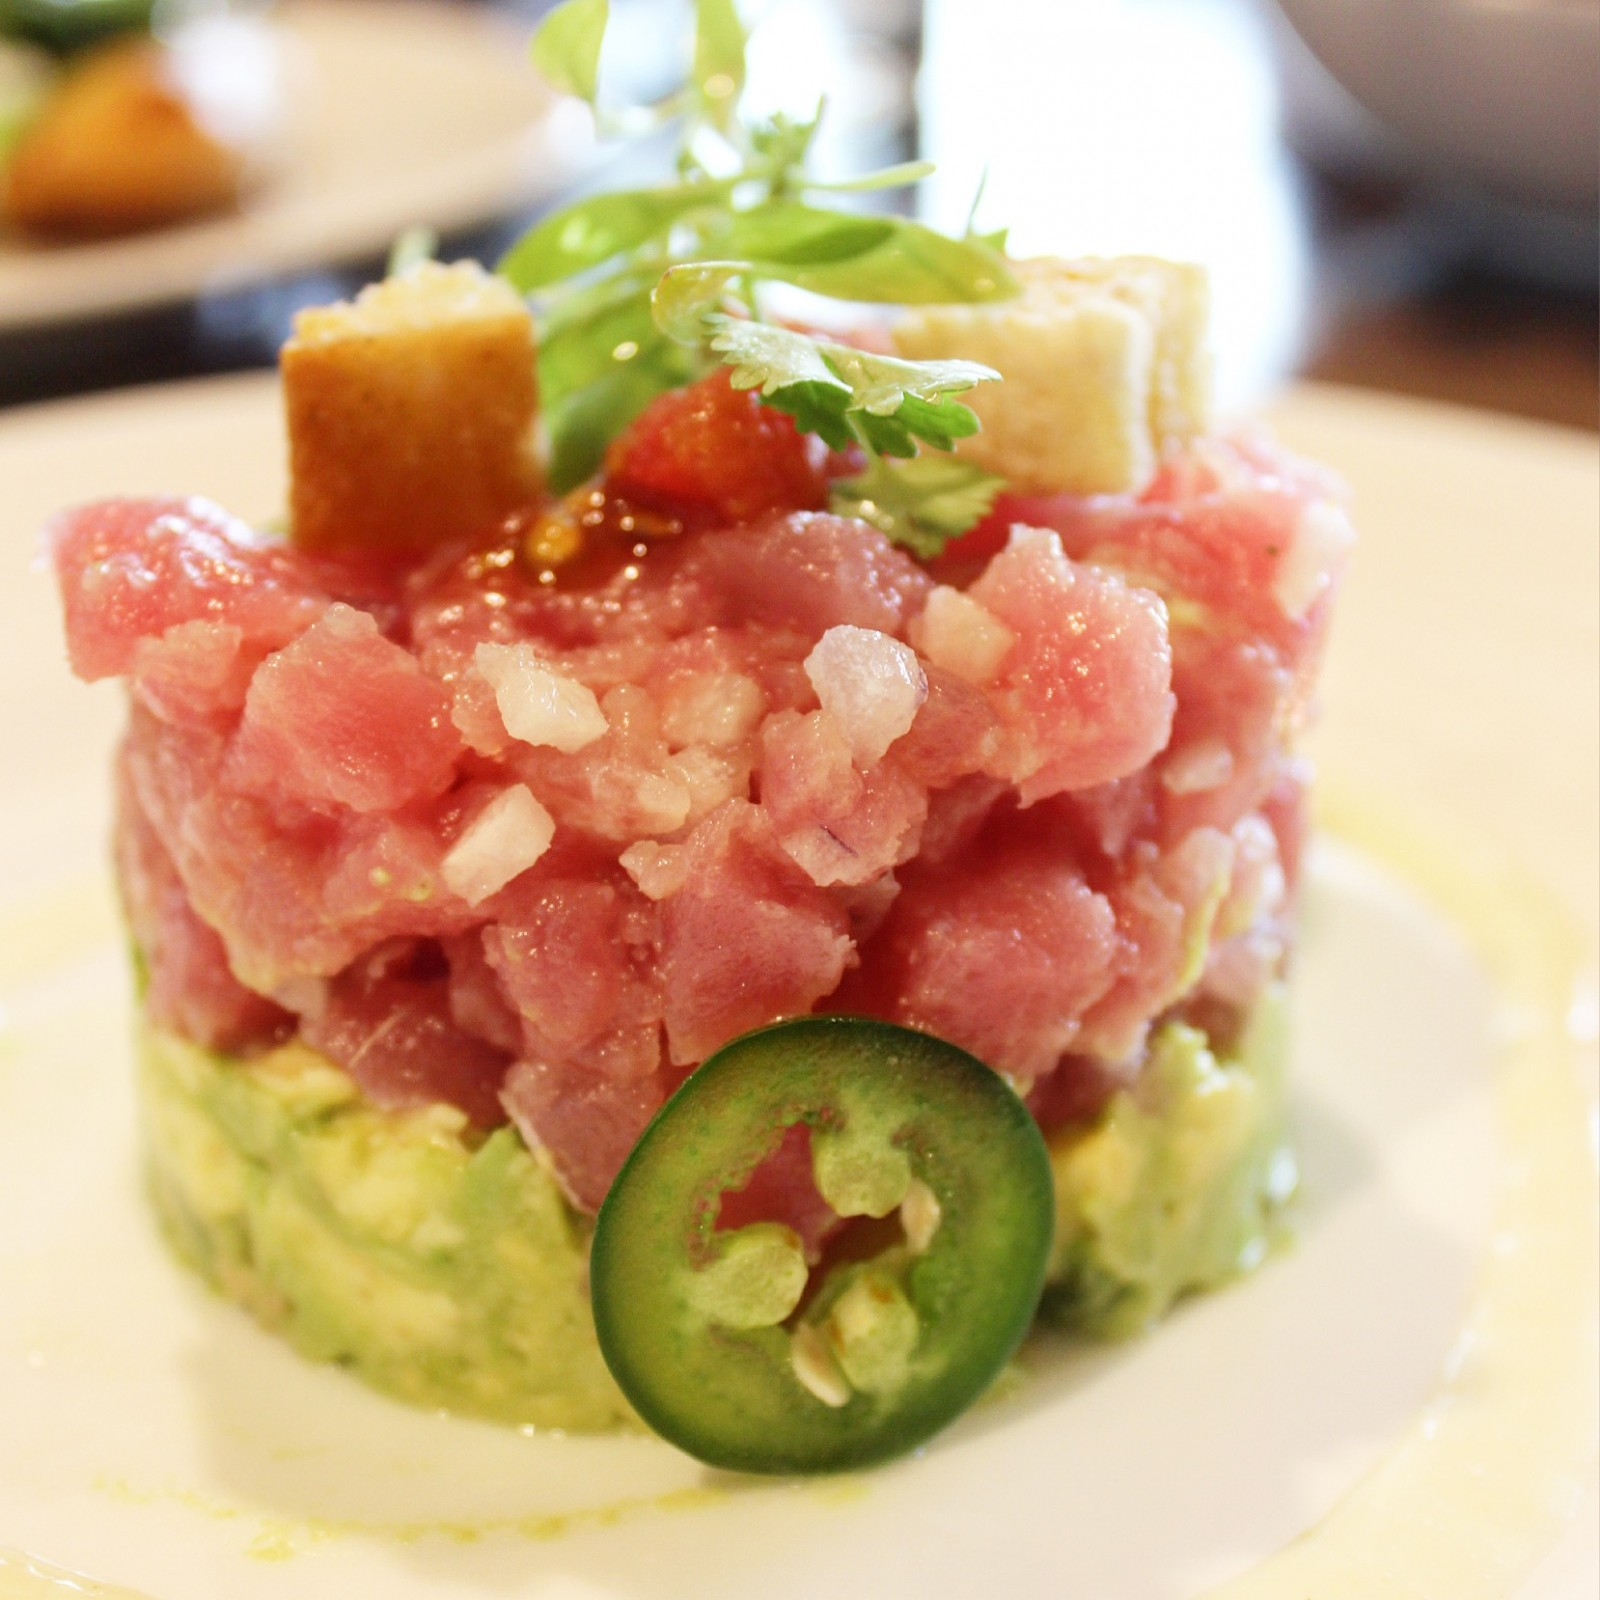 Plancha Four Seasons Resort Orlando Tranquilo Golf Course - Tuna Ceviche